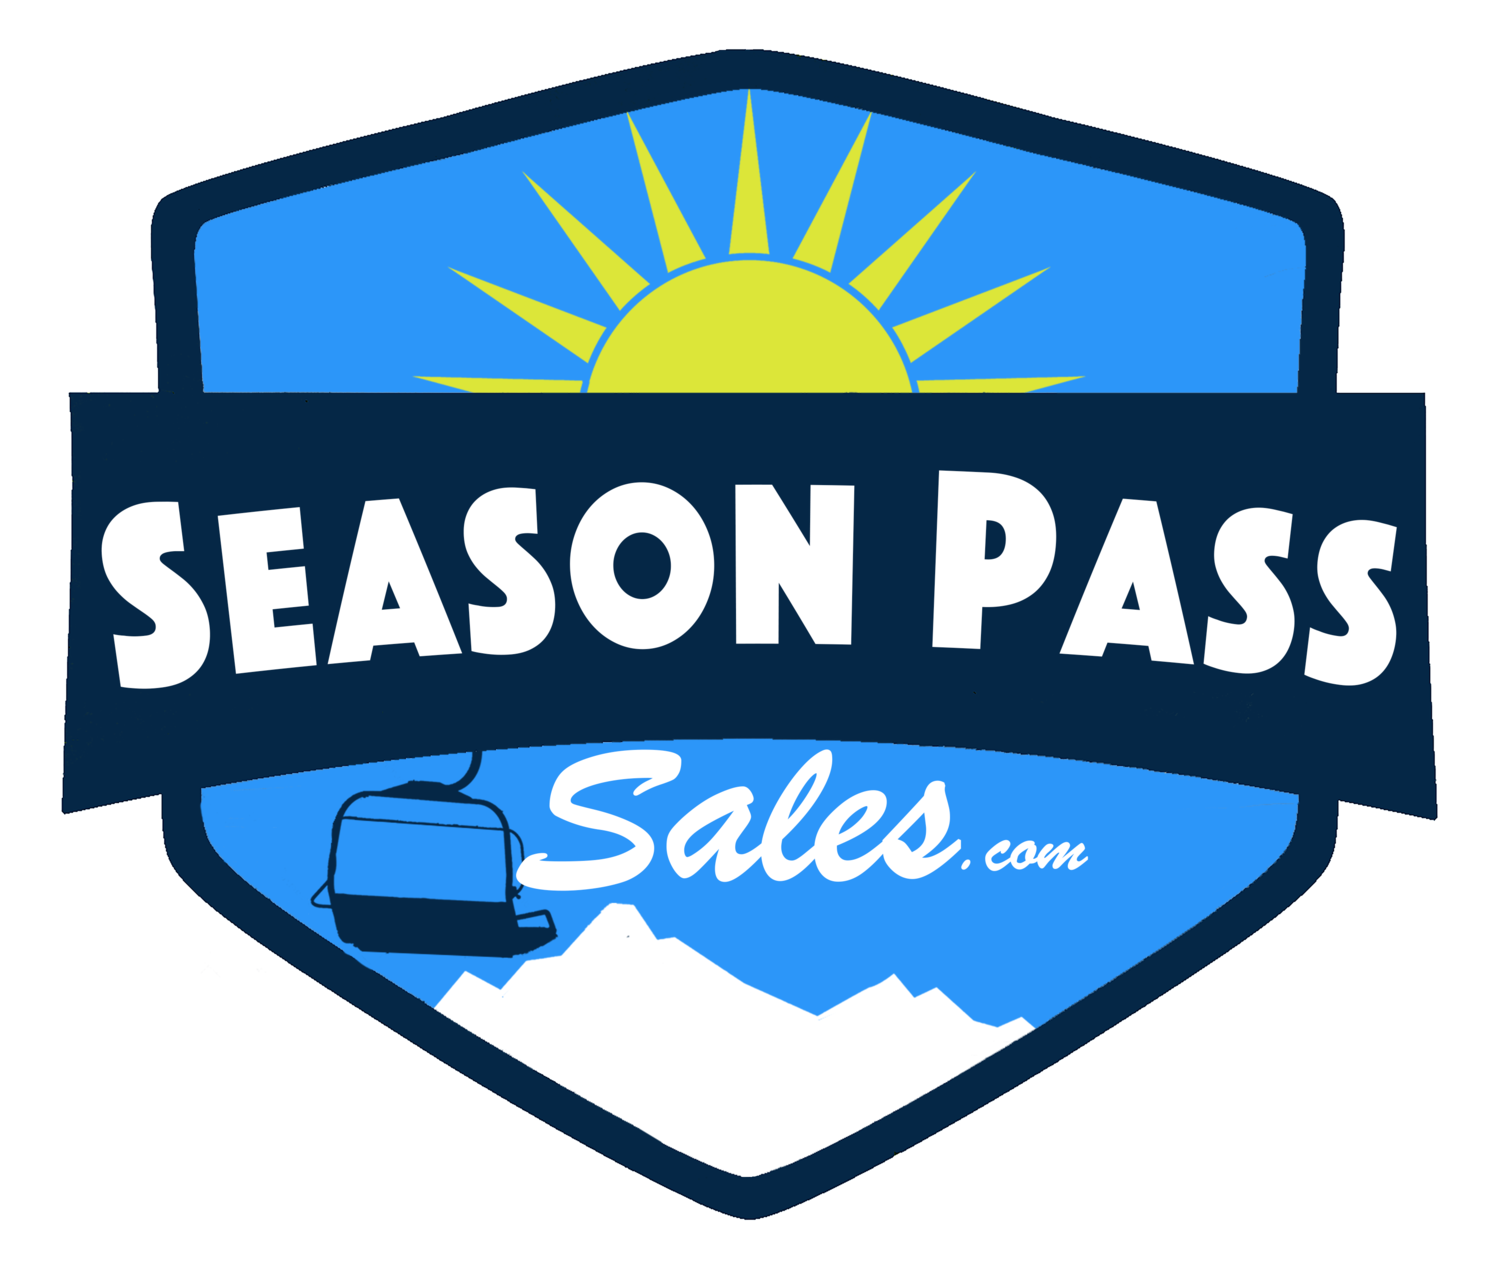 Season Pass Sales